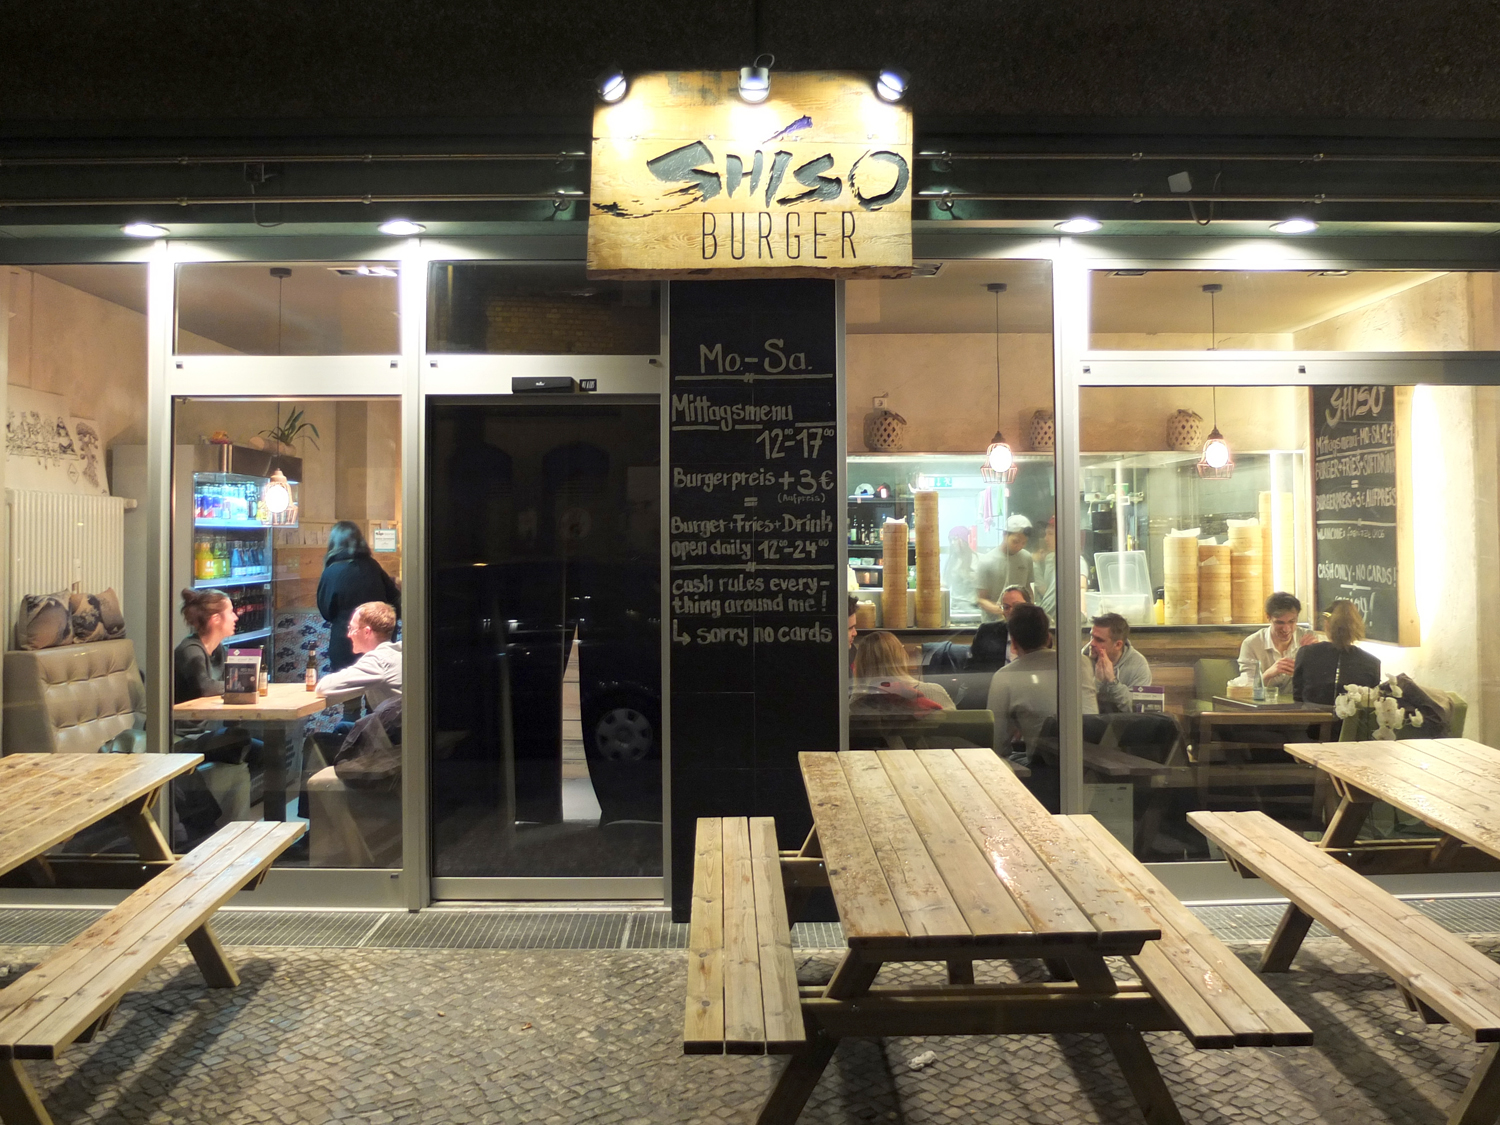 Shizo Burger Berlin